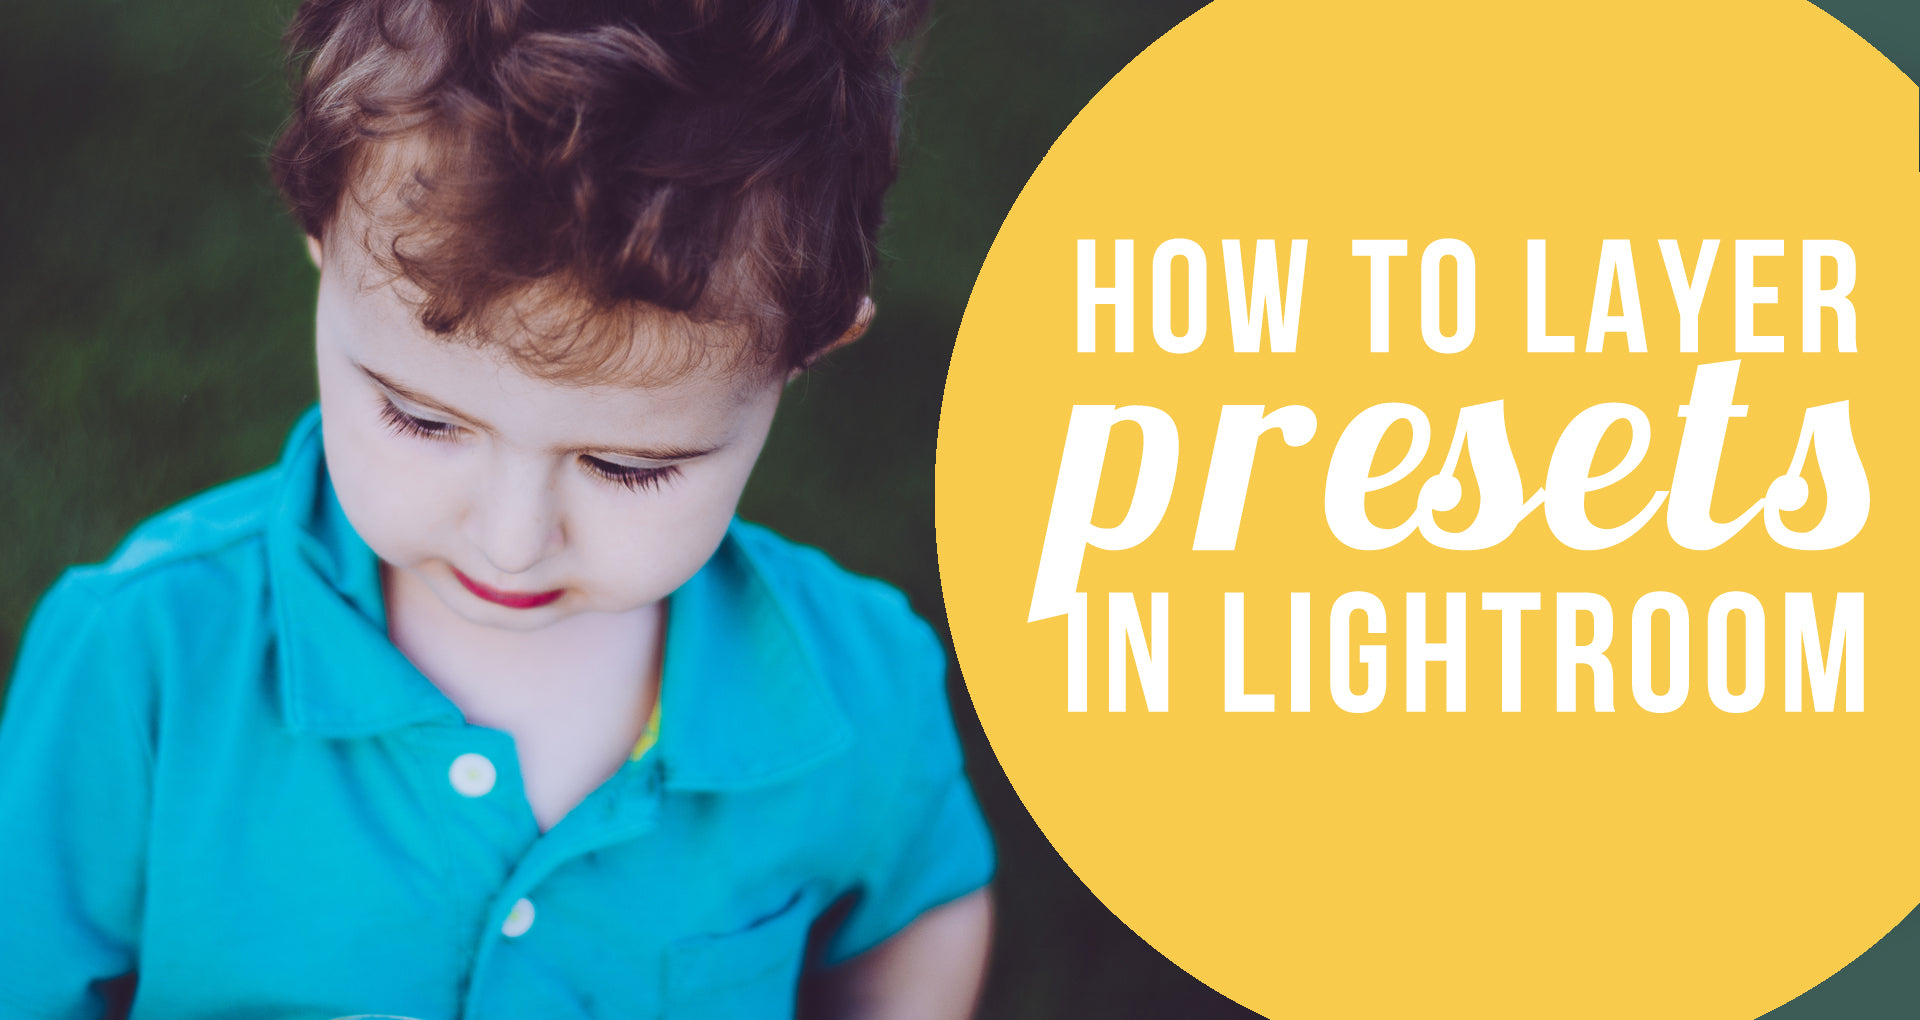 how to layer presets in lightroom